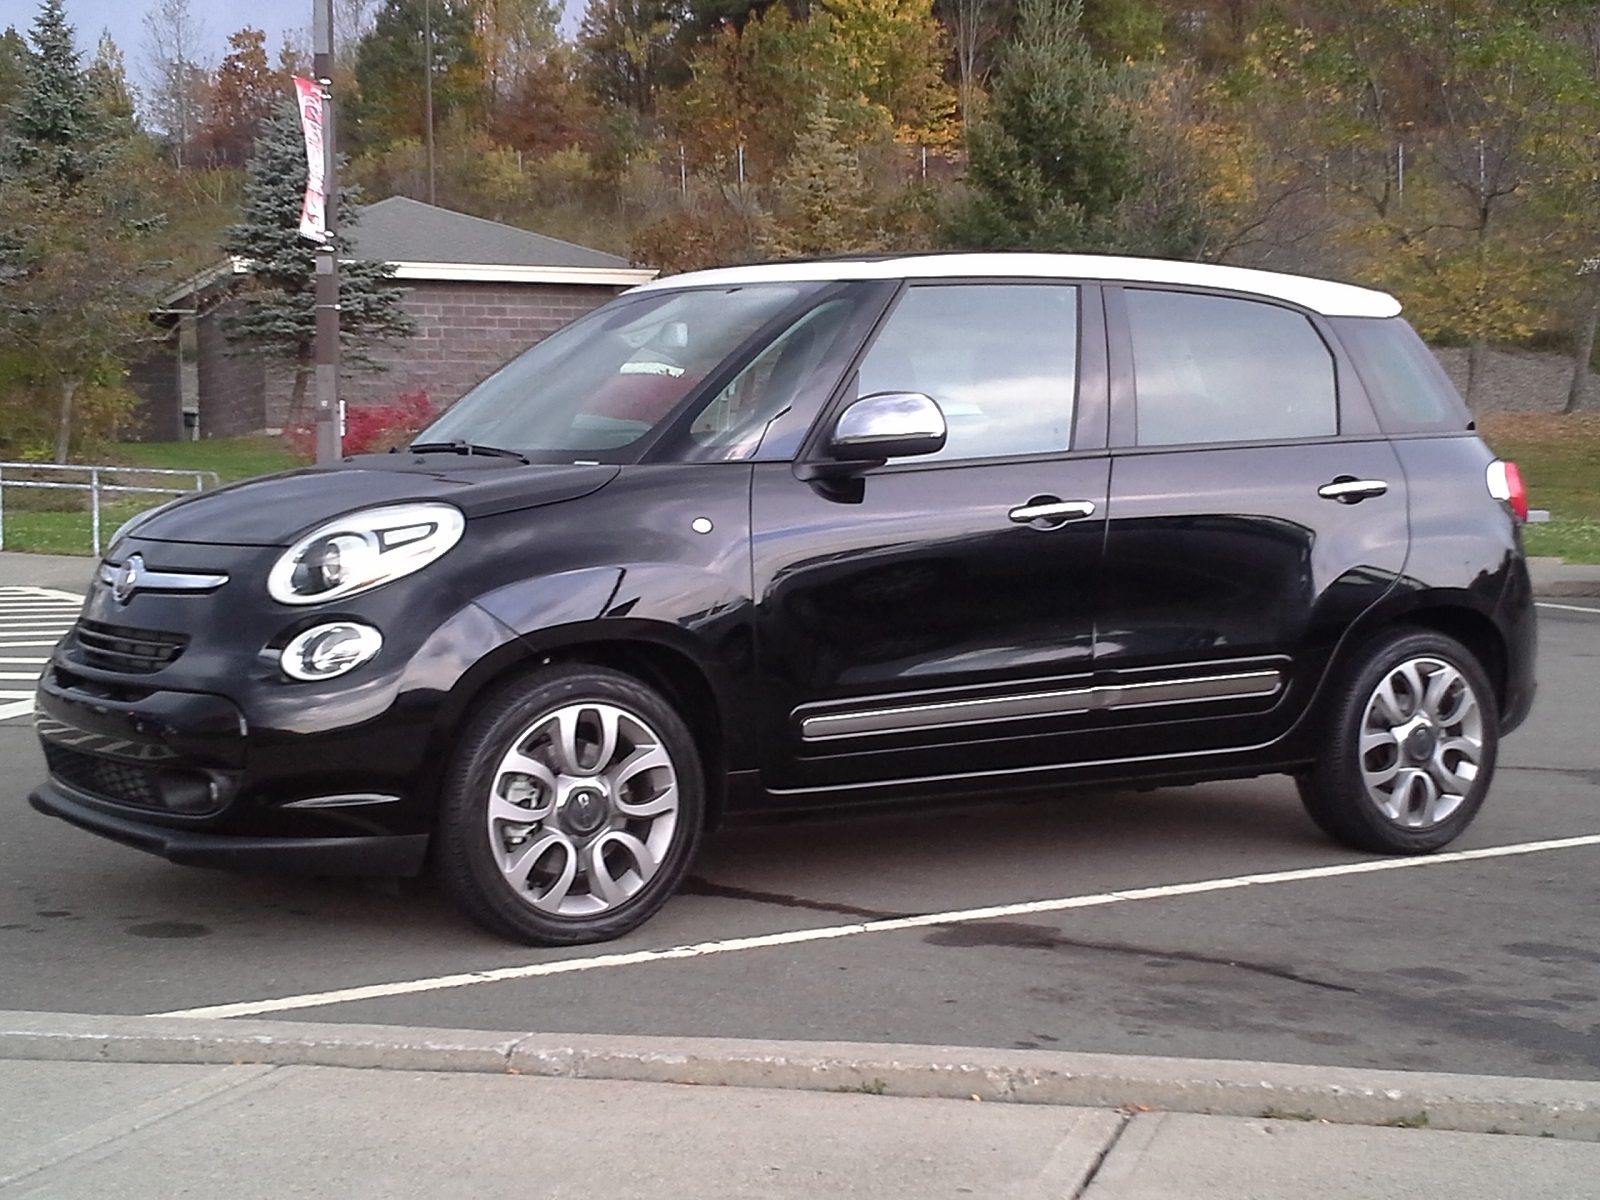 Fiat 500 Mpg >> 2014 Fiat 500L: Gas Mileage Test Of New Tall Wagon